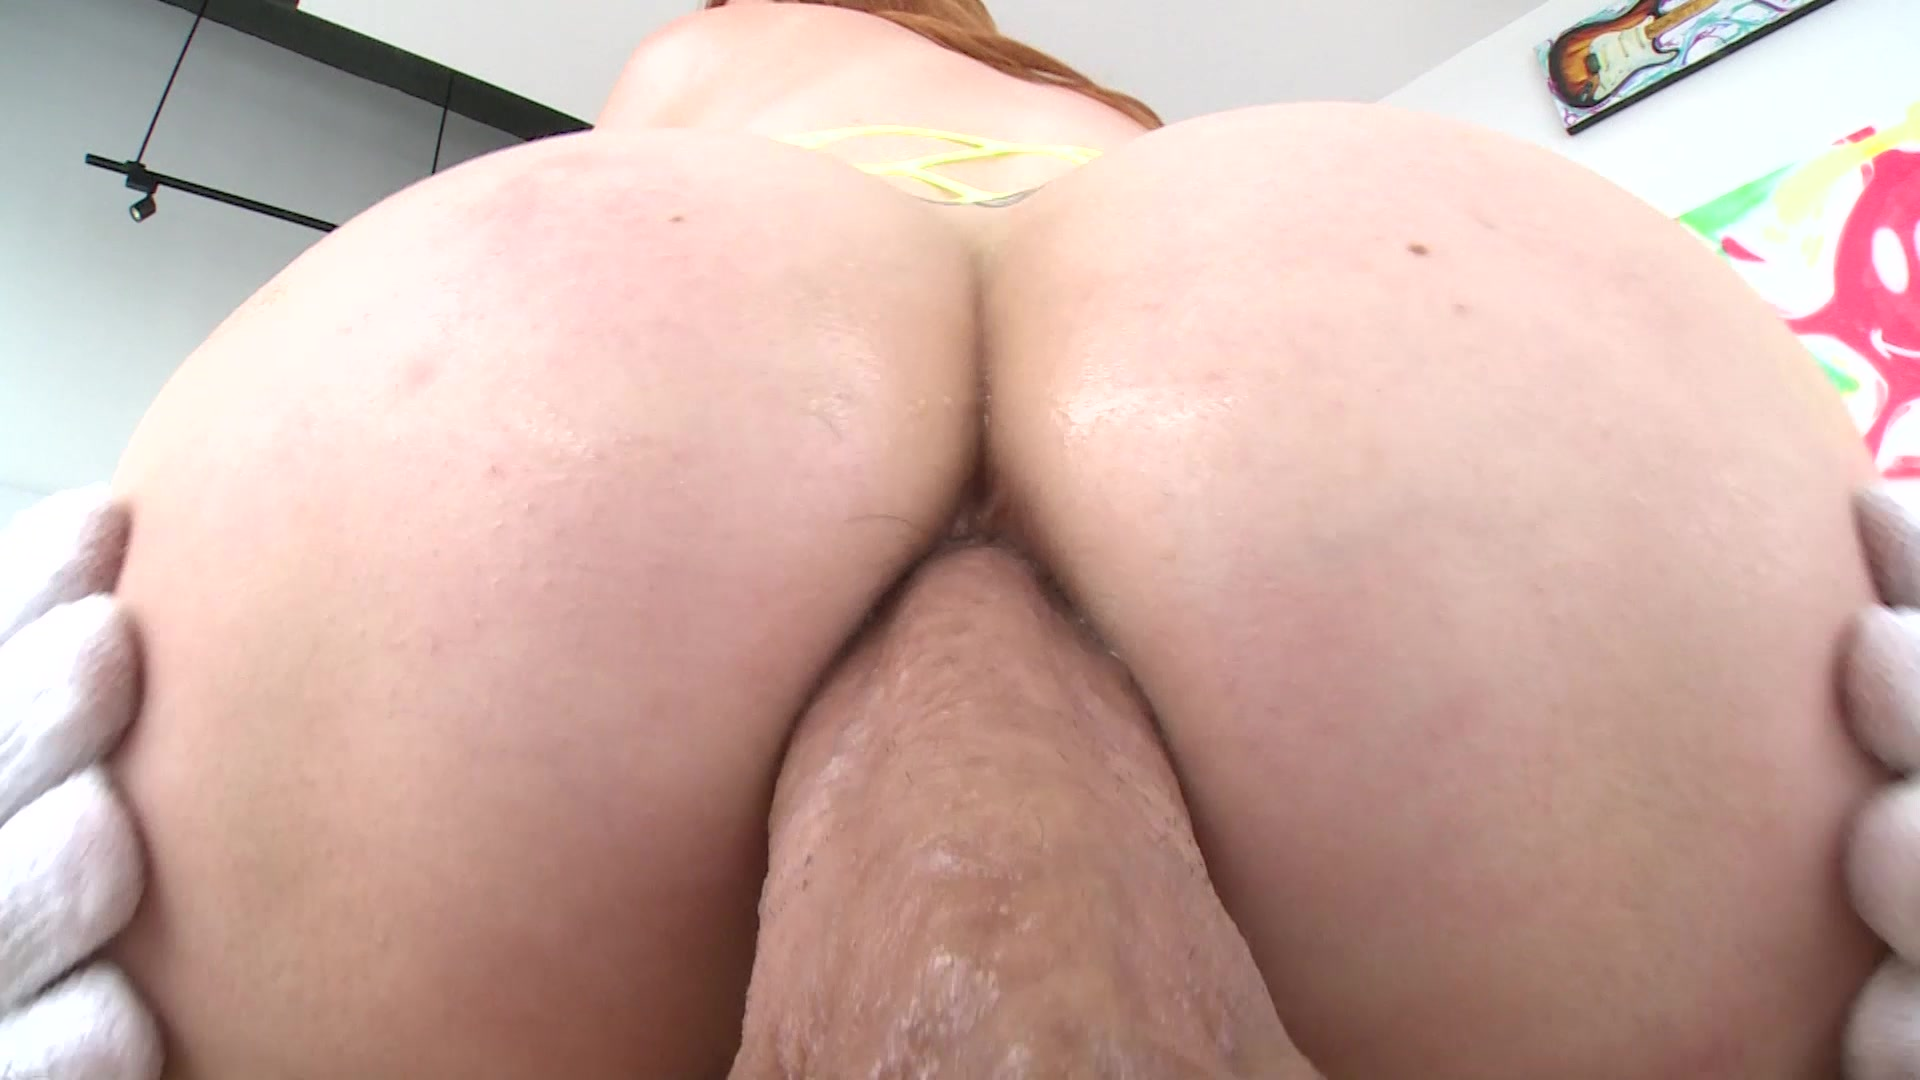 Nikki sexx glory hole